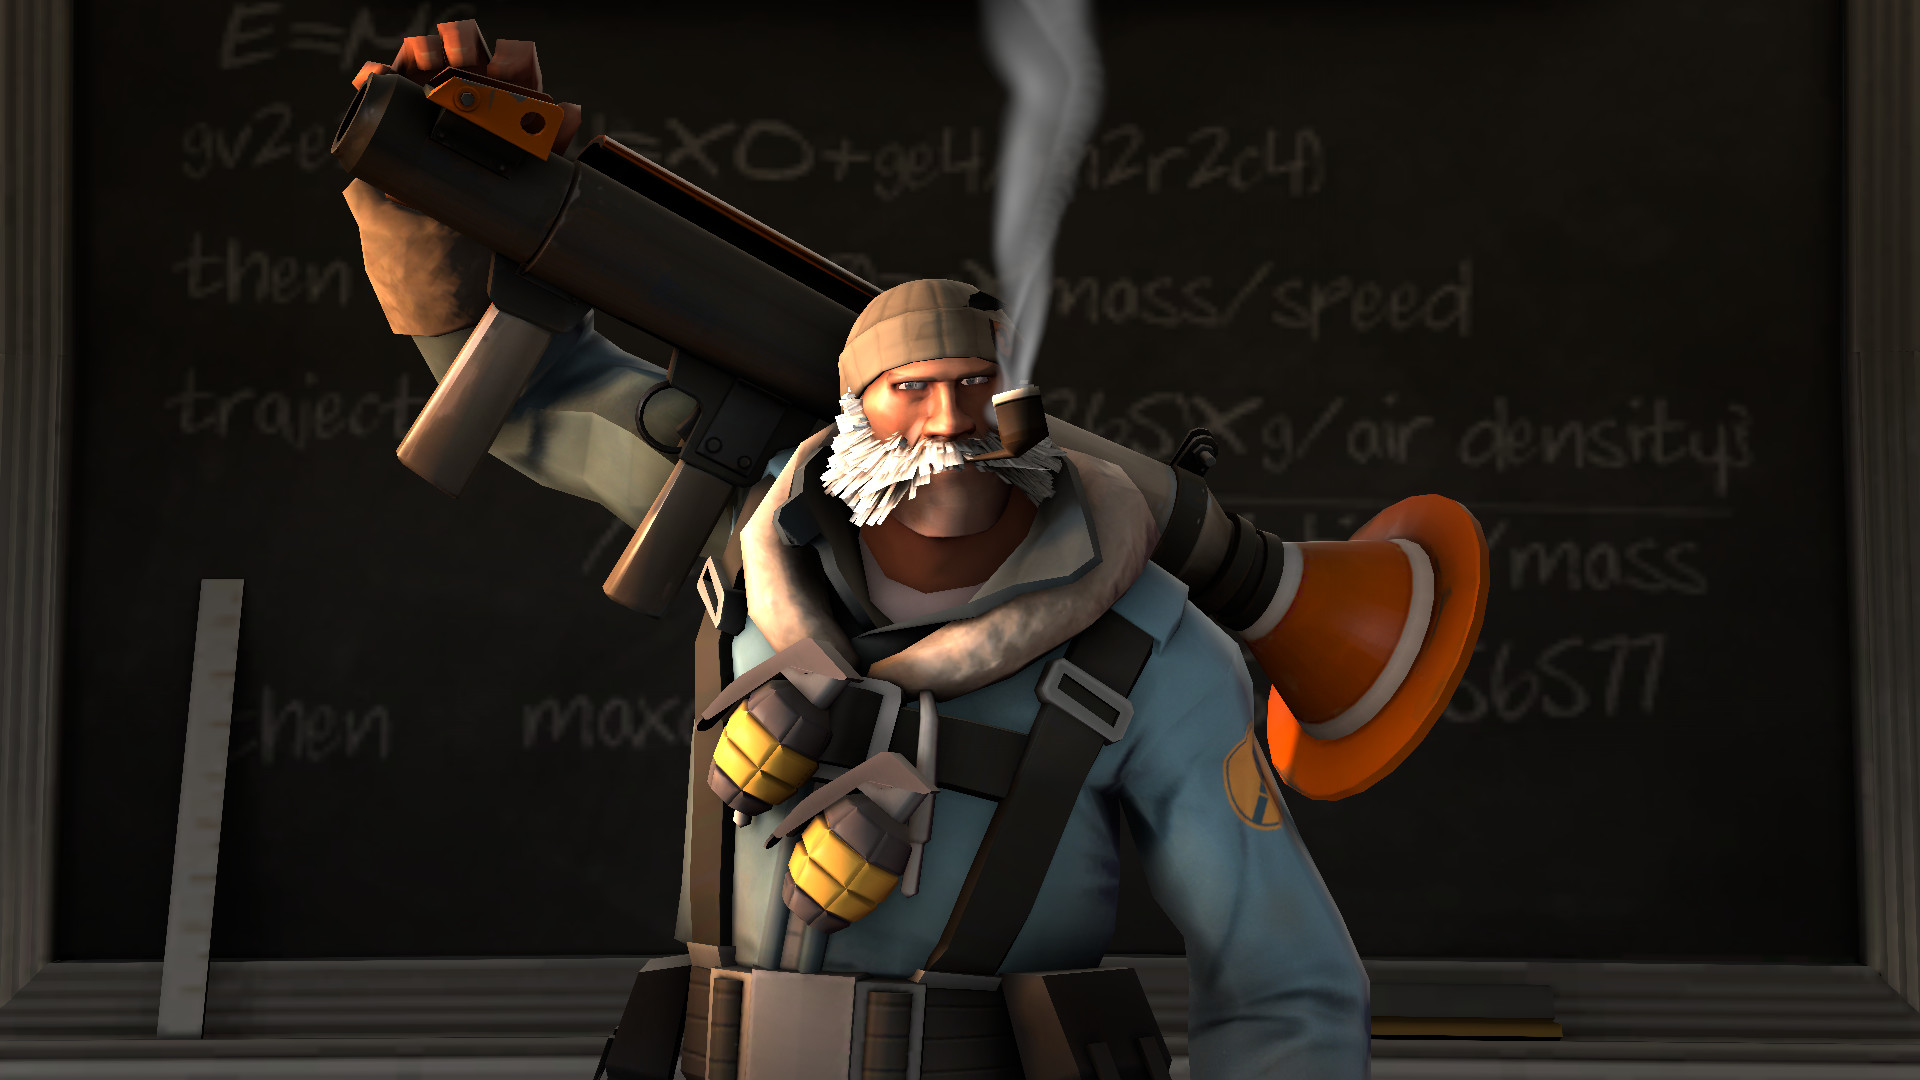 1920x1080 ... Self portrait of my Soldier loadout in TF2 by Robot11